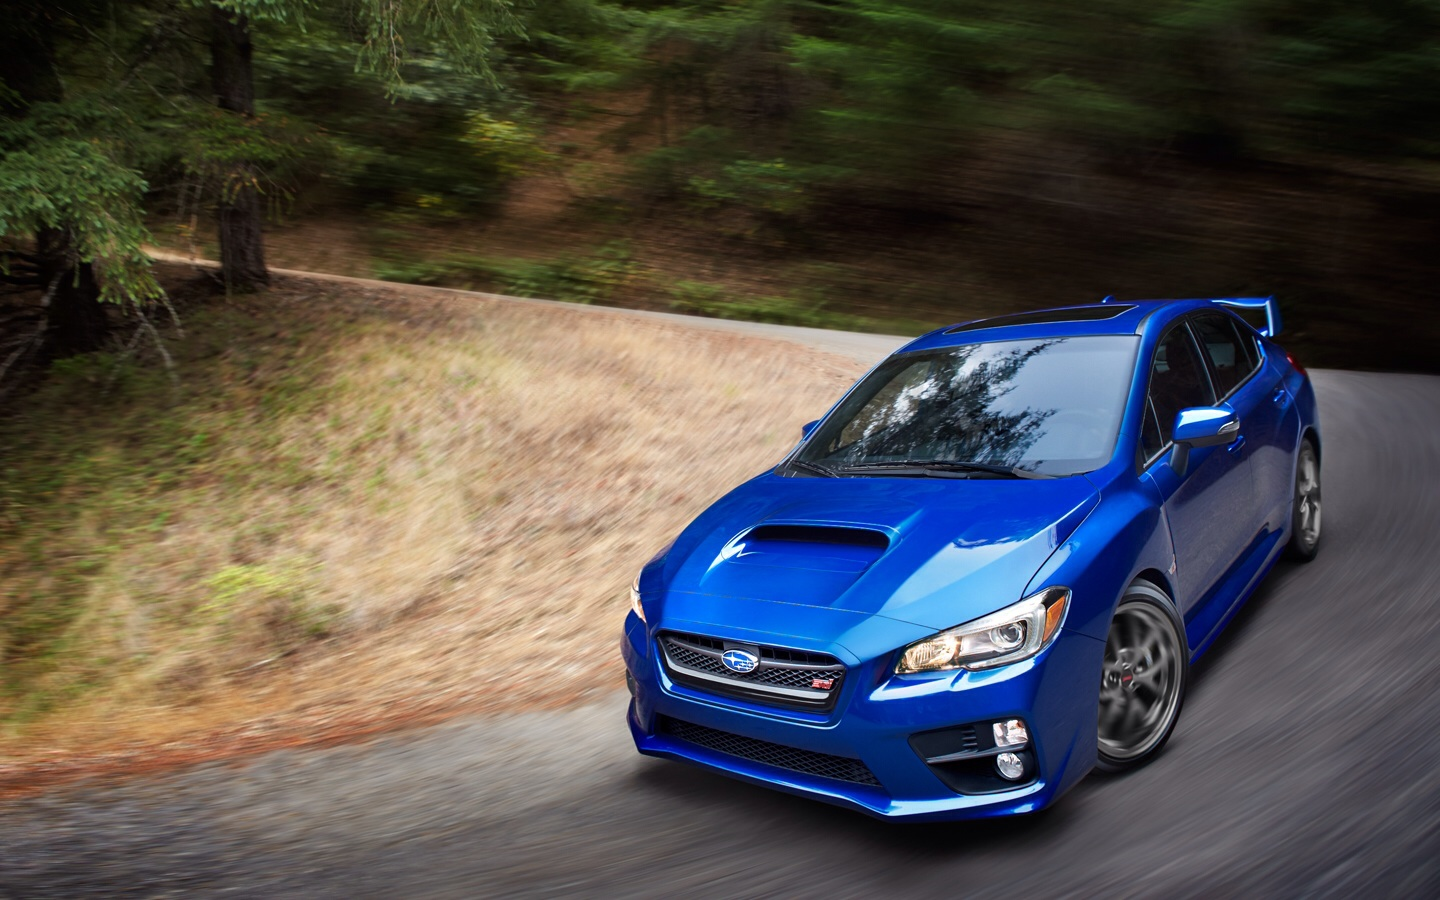 guzie's 2015 WRX STI journal-image-jpg